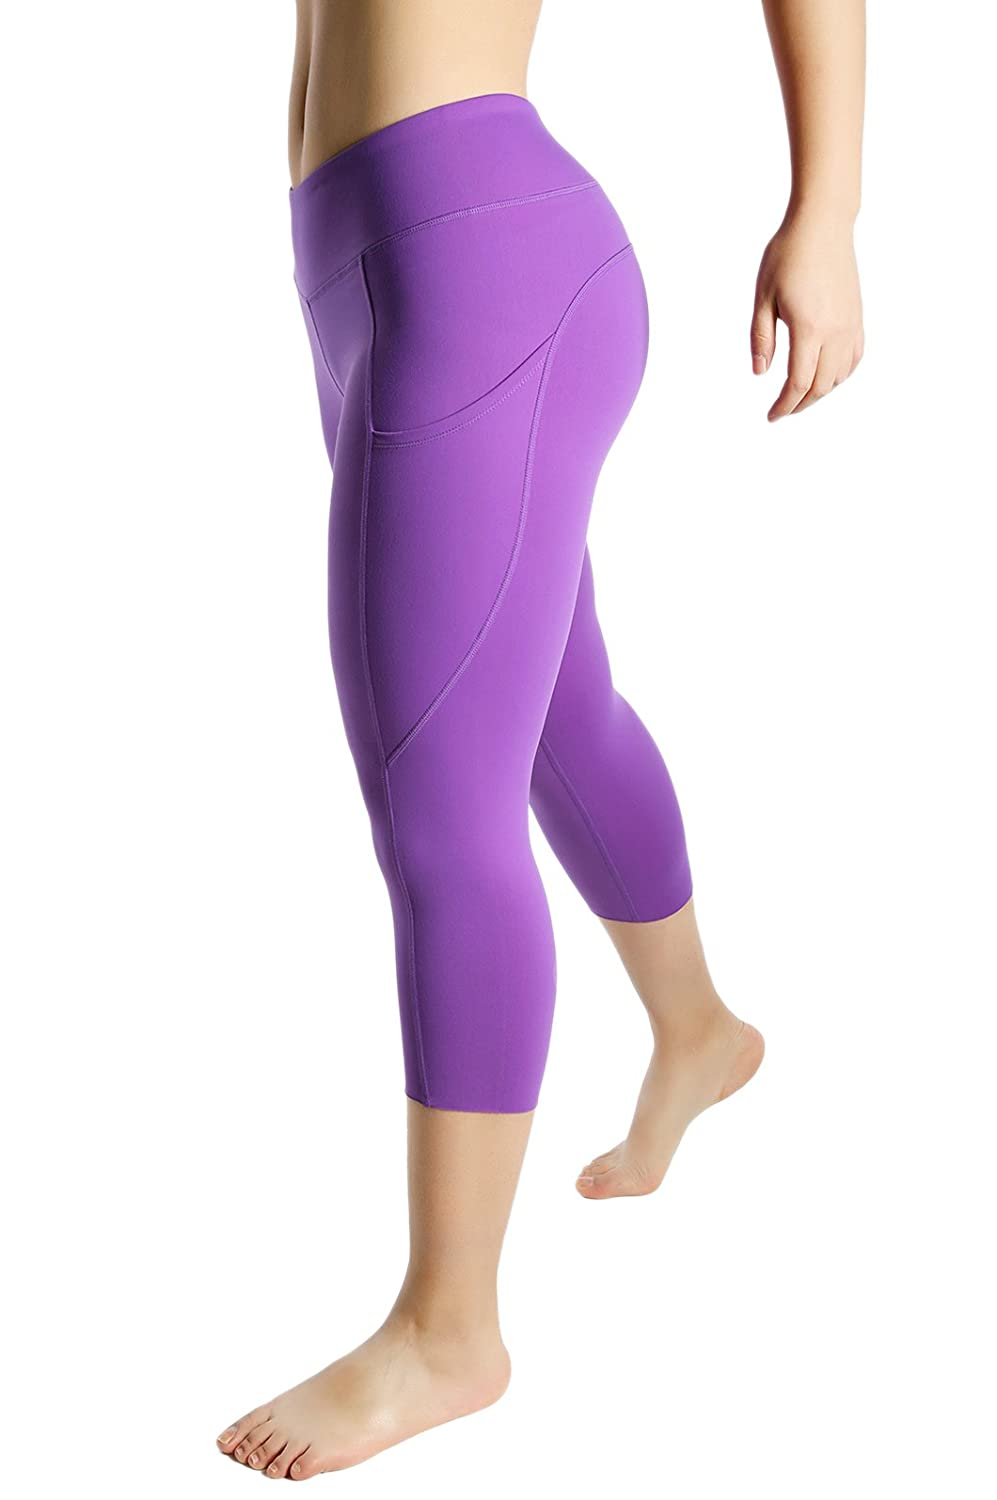 862fe87f59e0 Womens Out Side Pocket Wod Capris Compression Pants Yoga Workout Leggings  Full Sizes